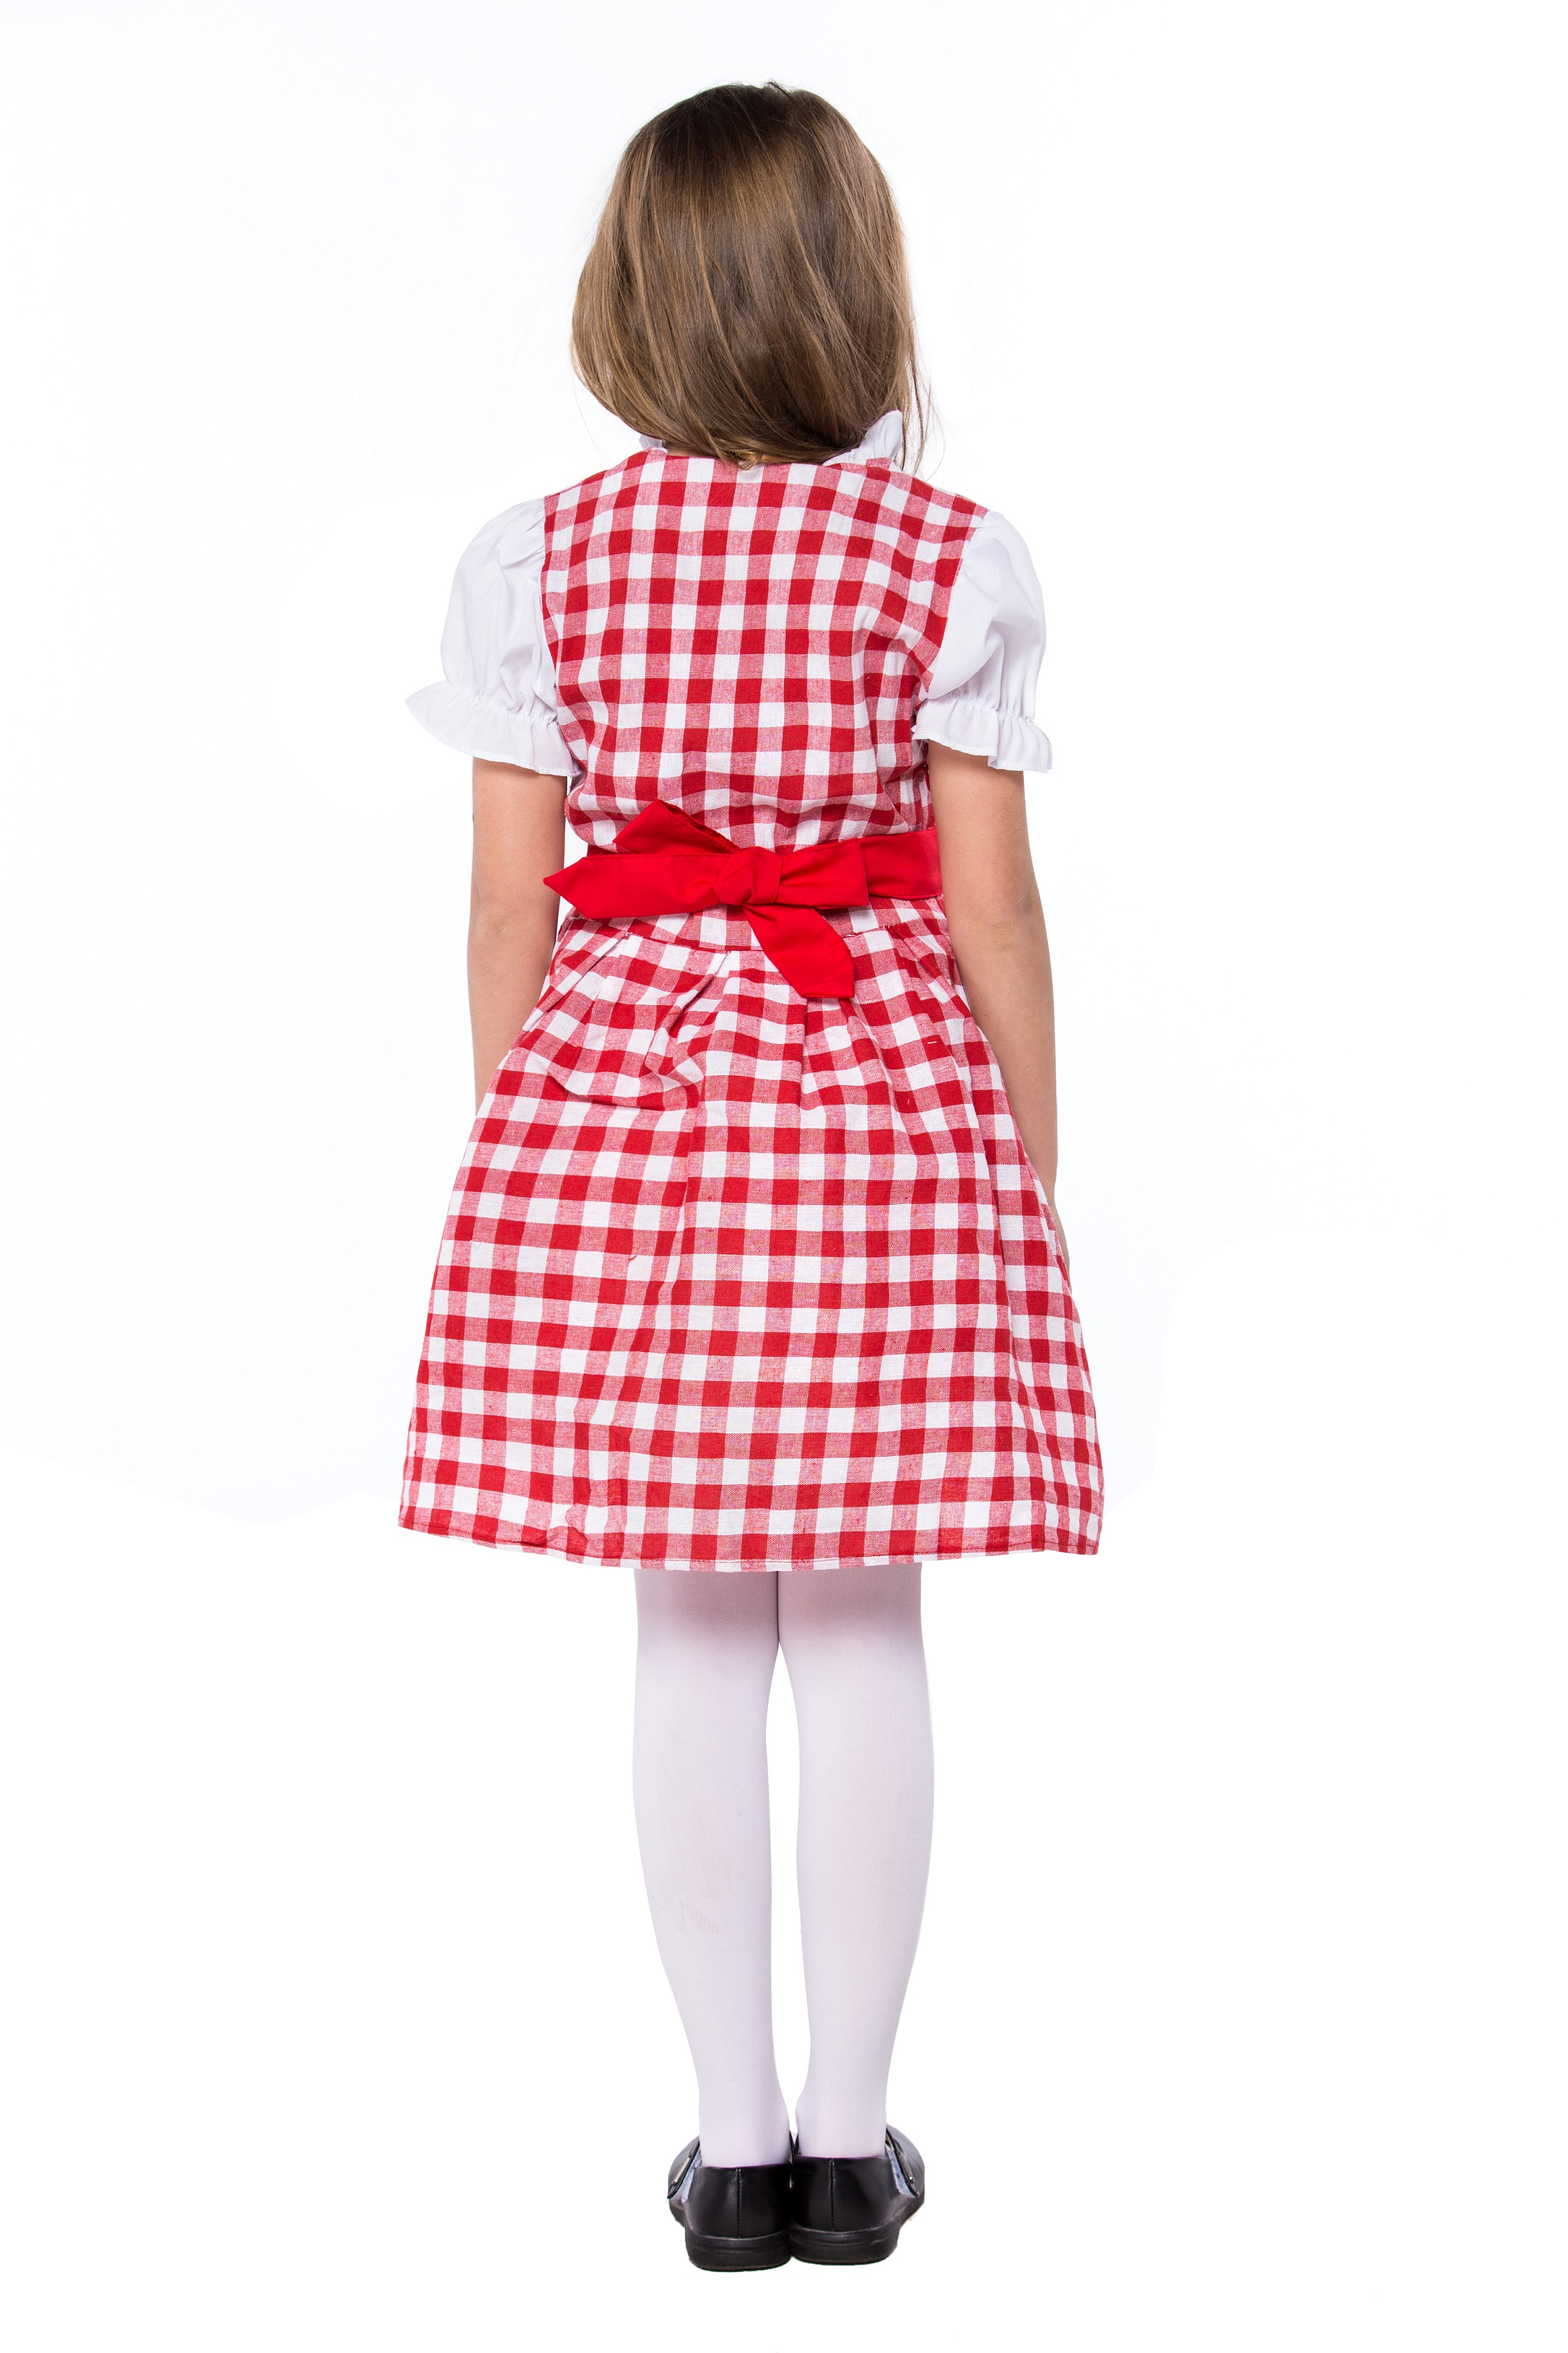 hot beer girl costume kids costume cosplay  brazilian costumes for kids